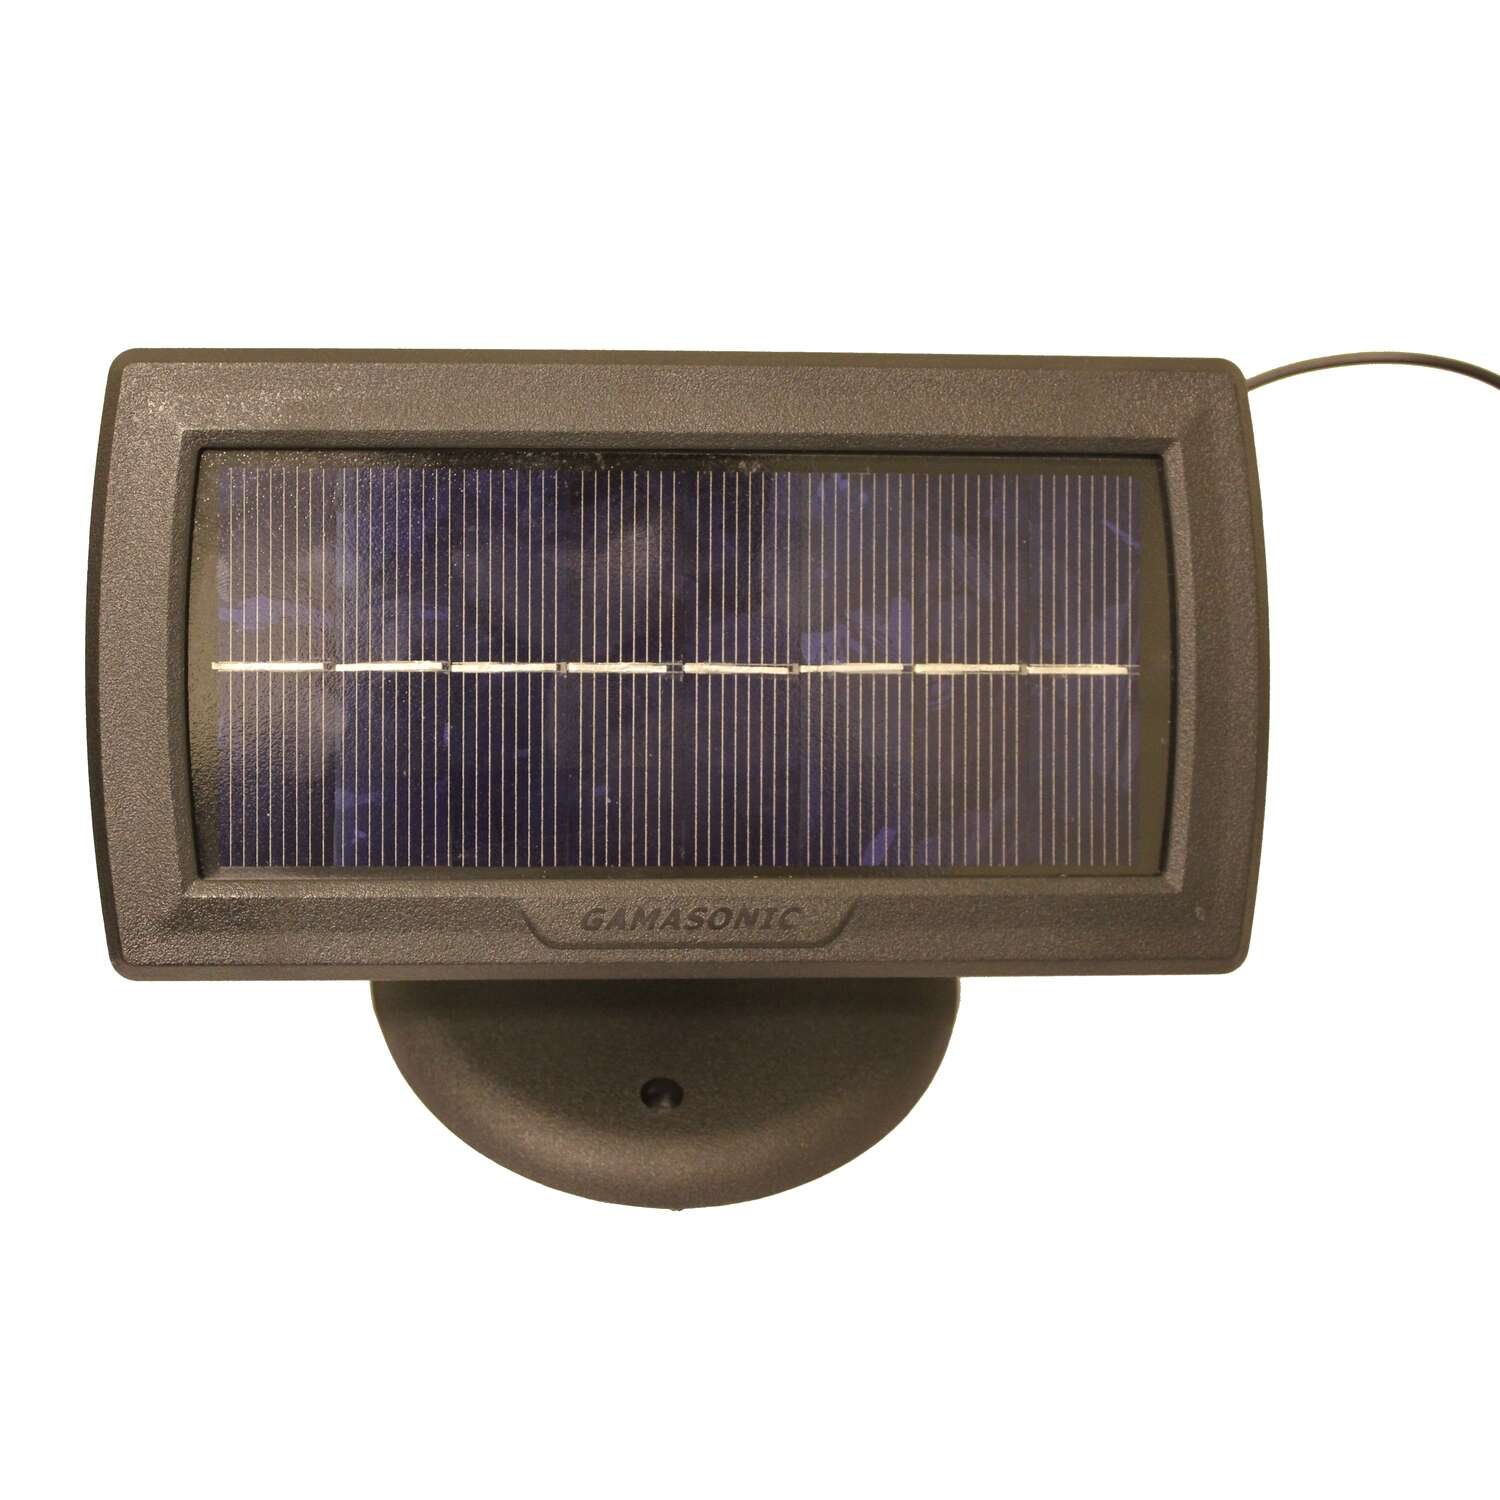 Gama Sonic  Solar Powered  Spotlight Kit  LED  1 pk